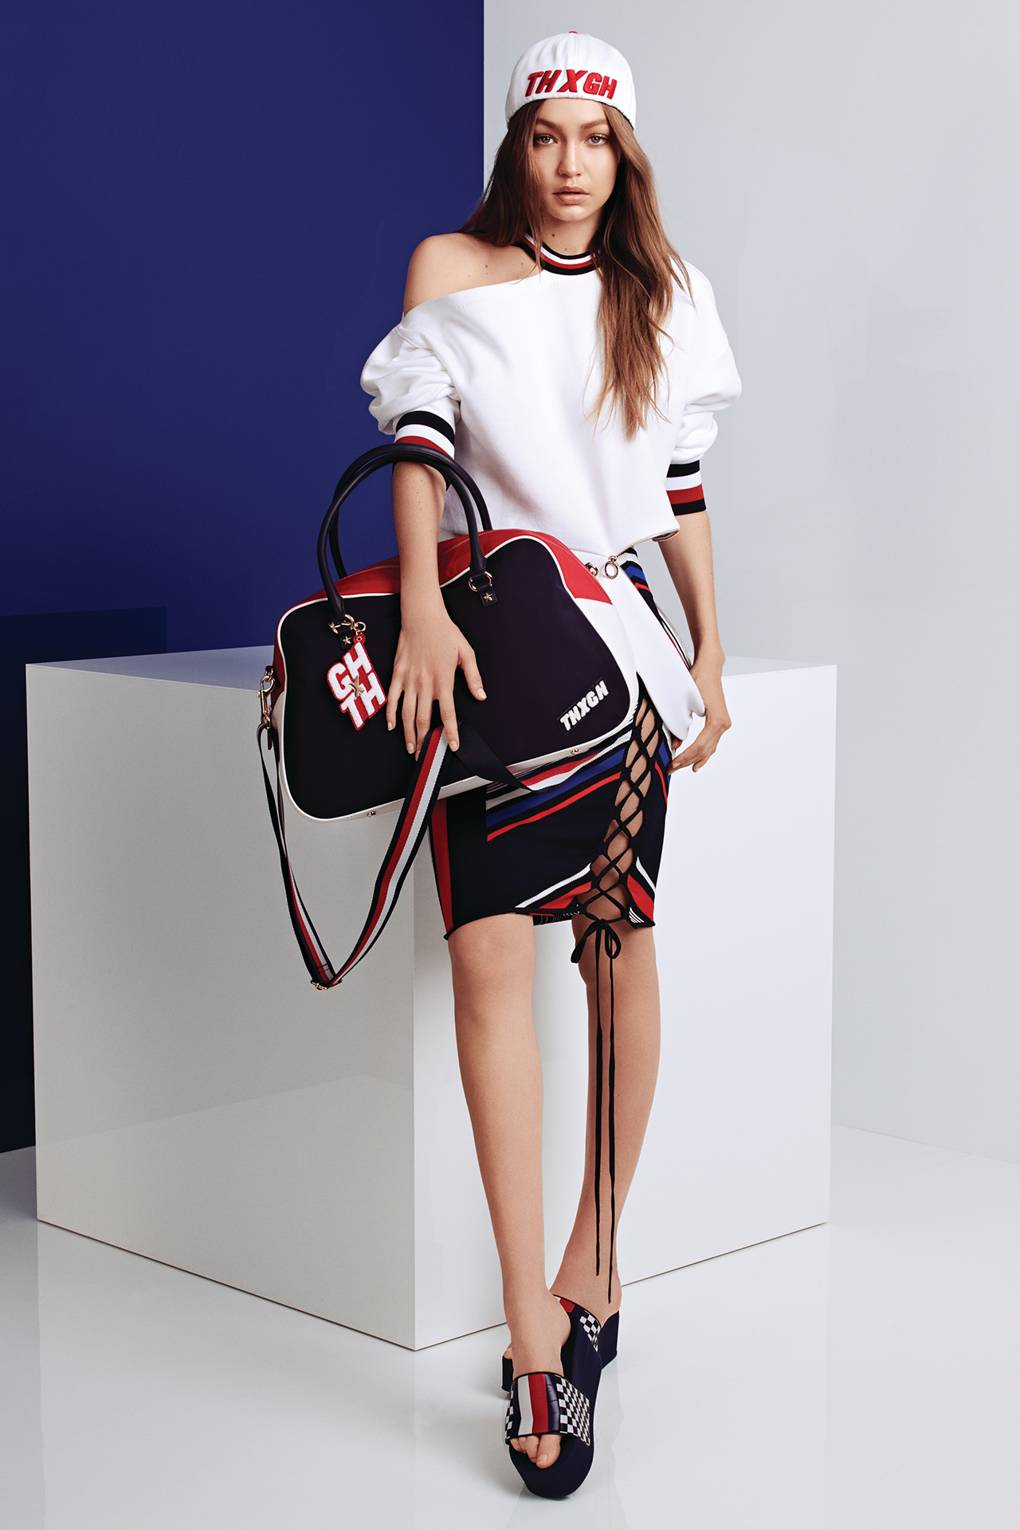 cf17ad521b12 Gigi Hadid x Tommy Hilfiger Pictures   Collection